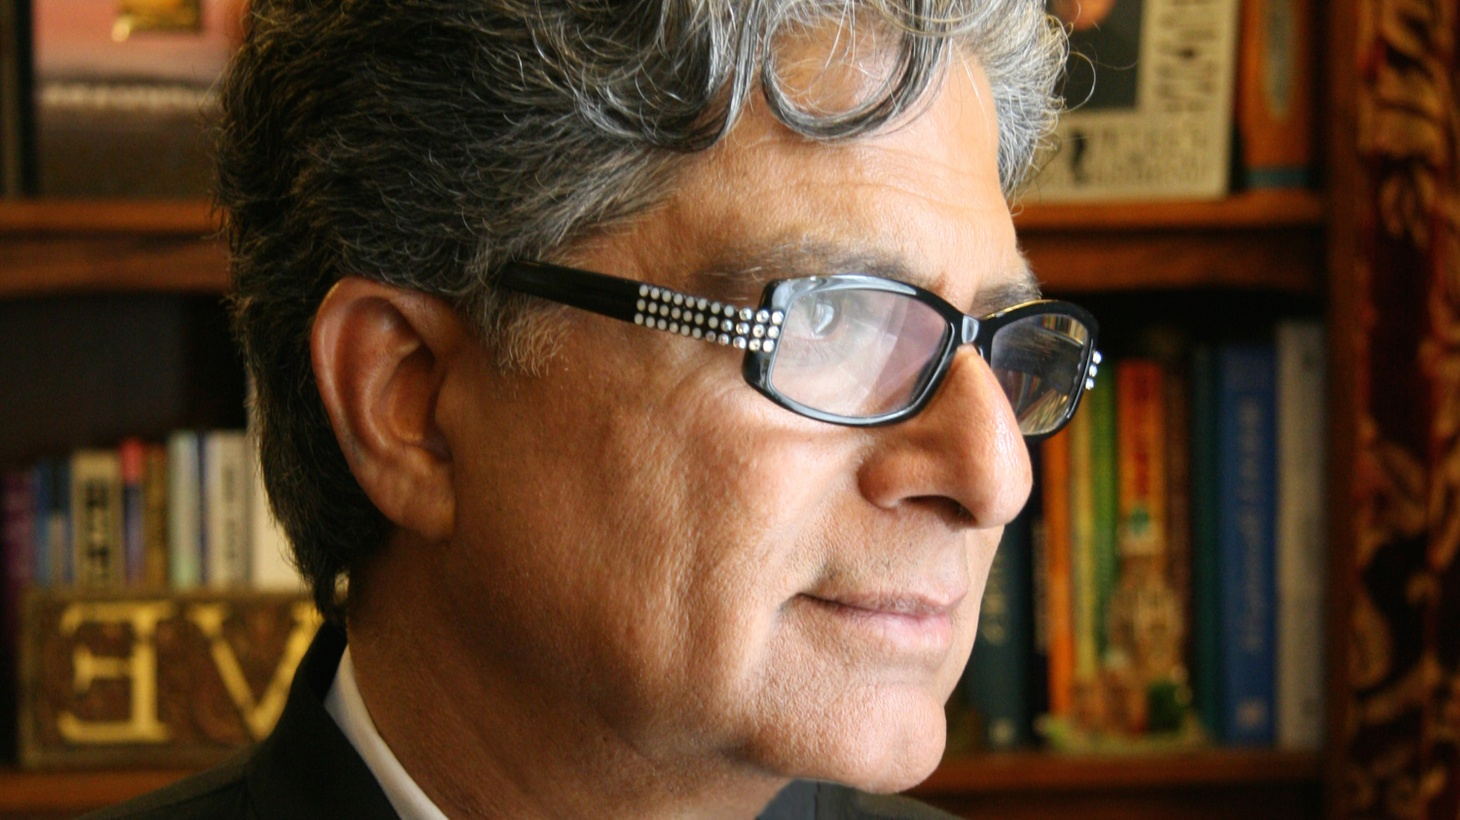 Deepak Chopra says the pandemic has forced people to find meaning in their existence.